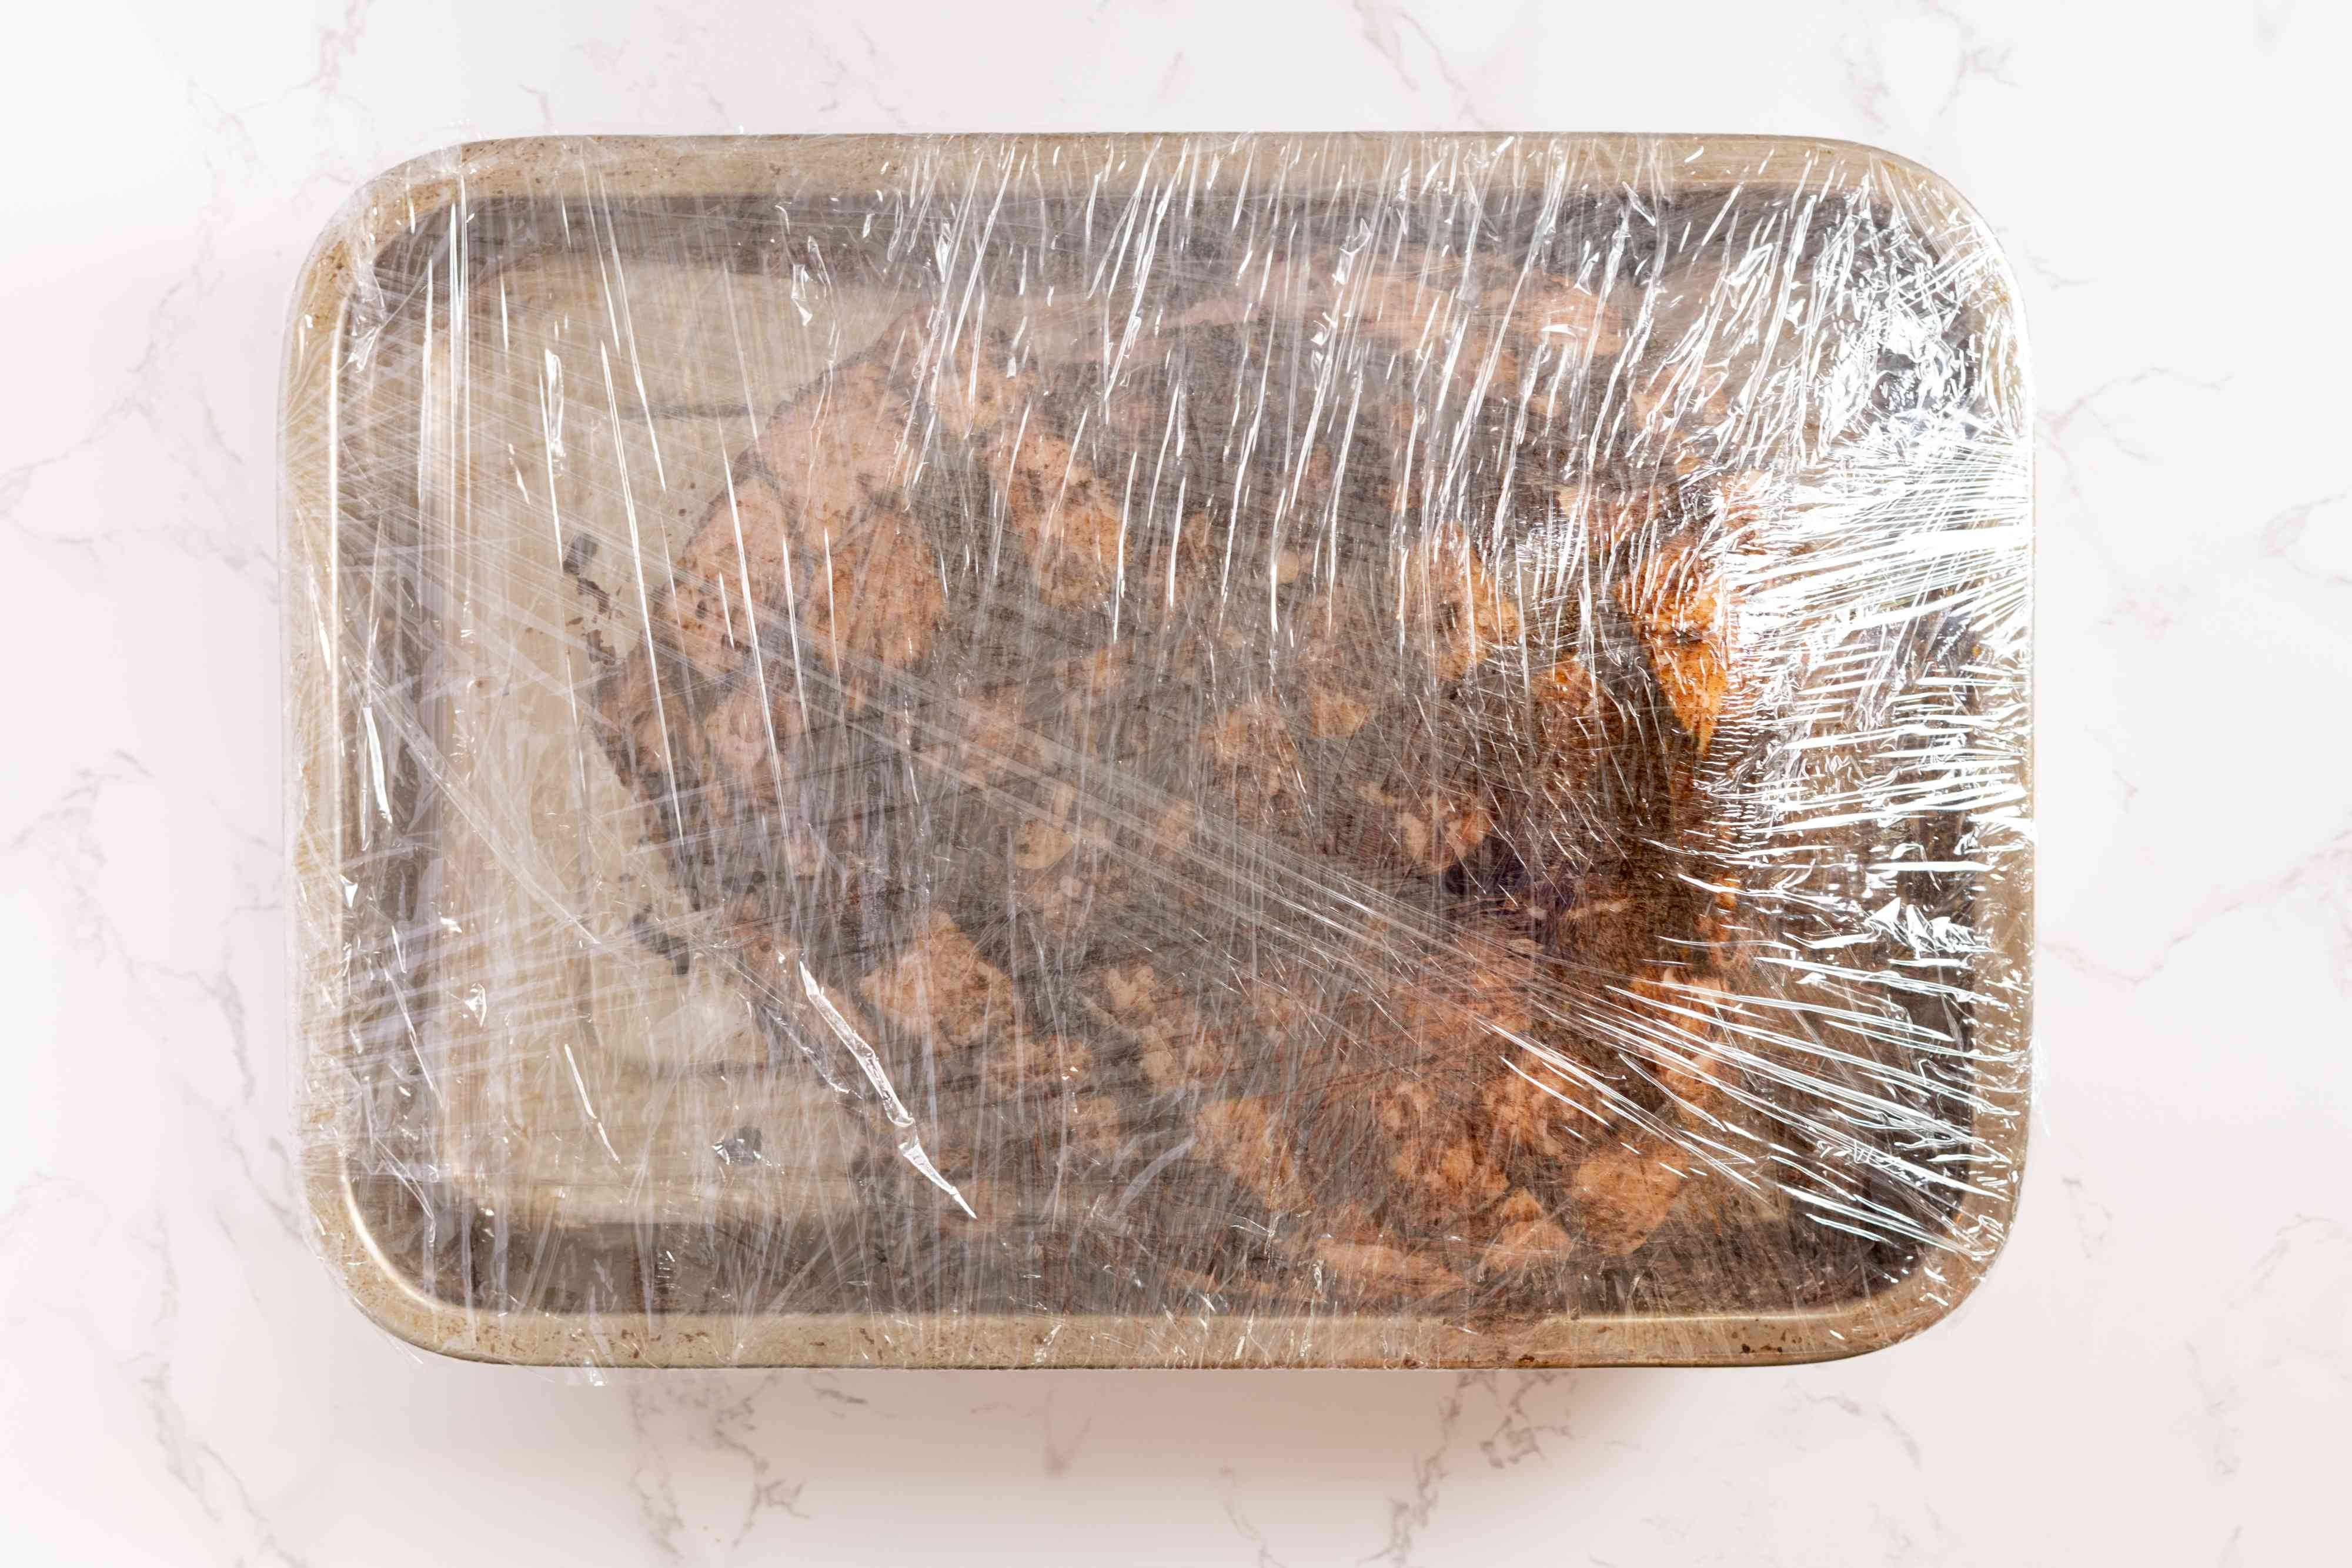 Place the pork in a roasting pan and cover with plastic wrap